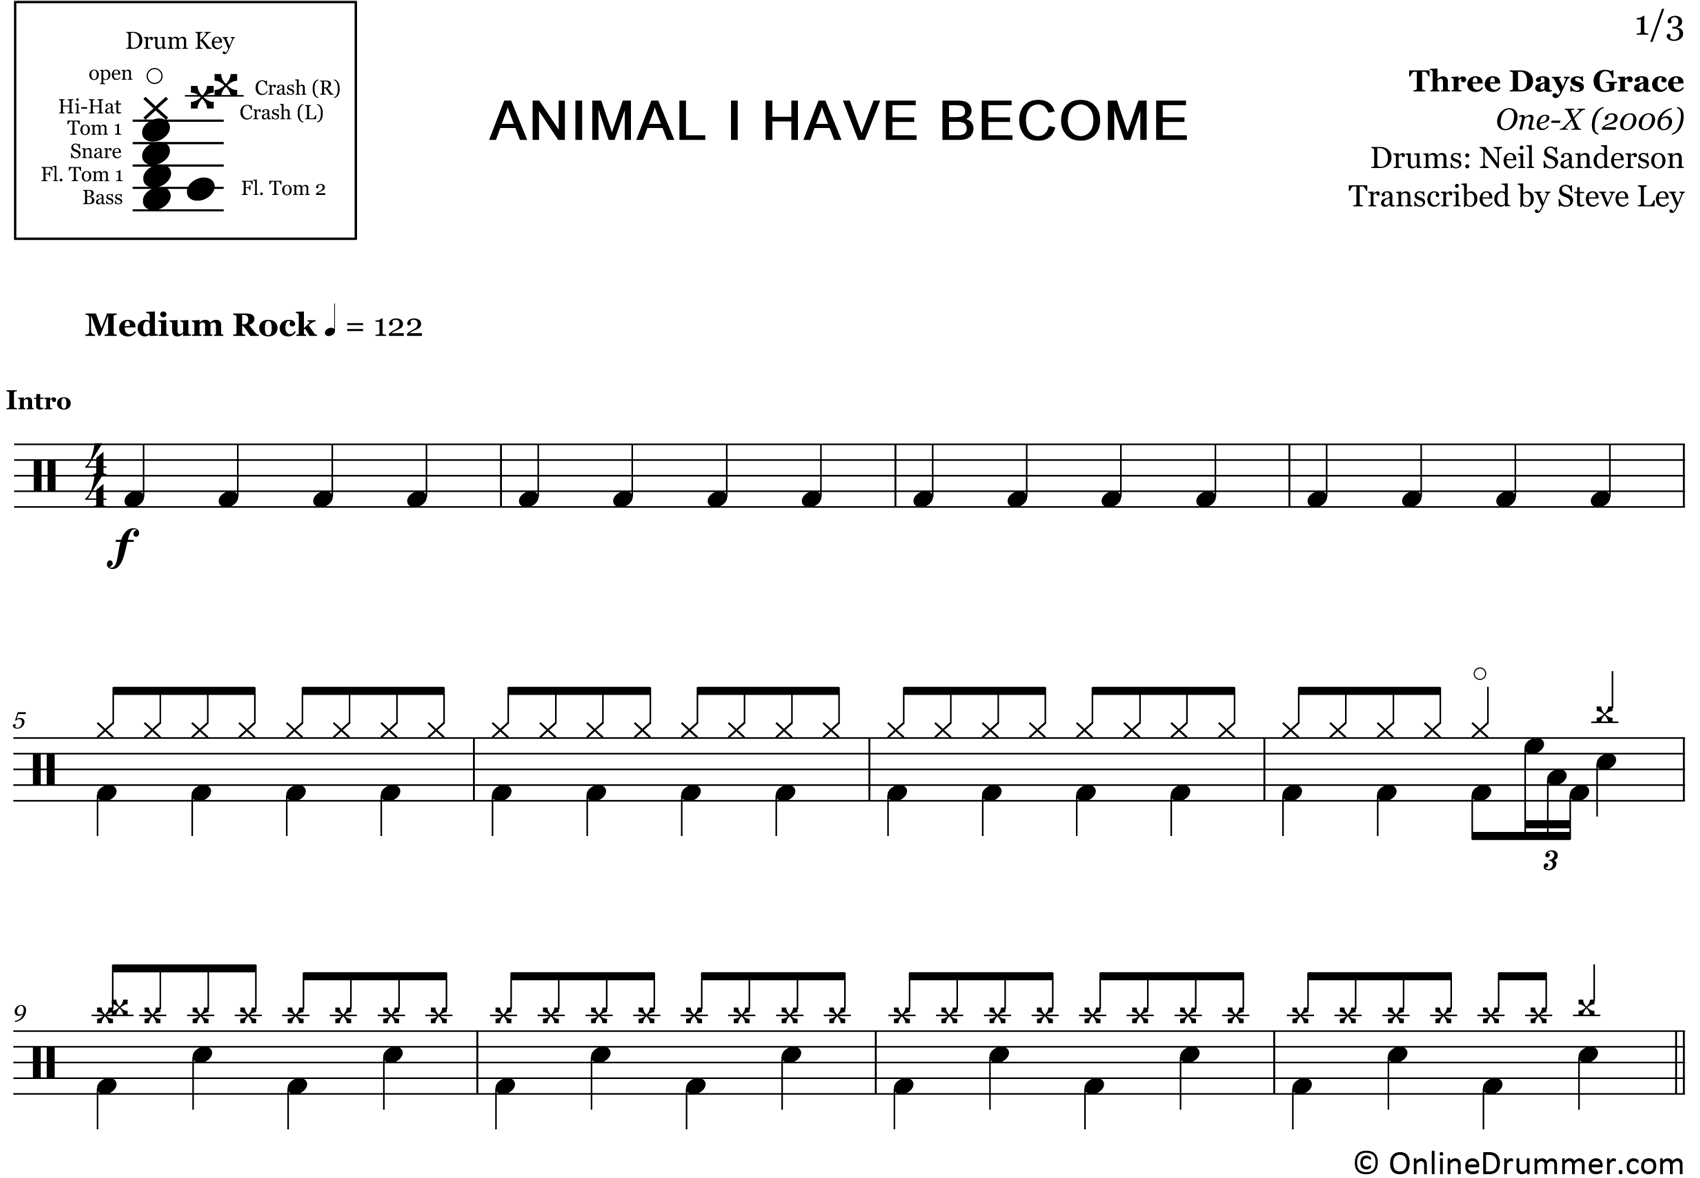 Animal I Have Become - Three Days Grace - Drum Sheet Music